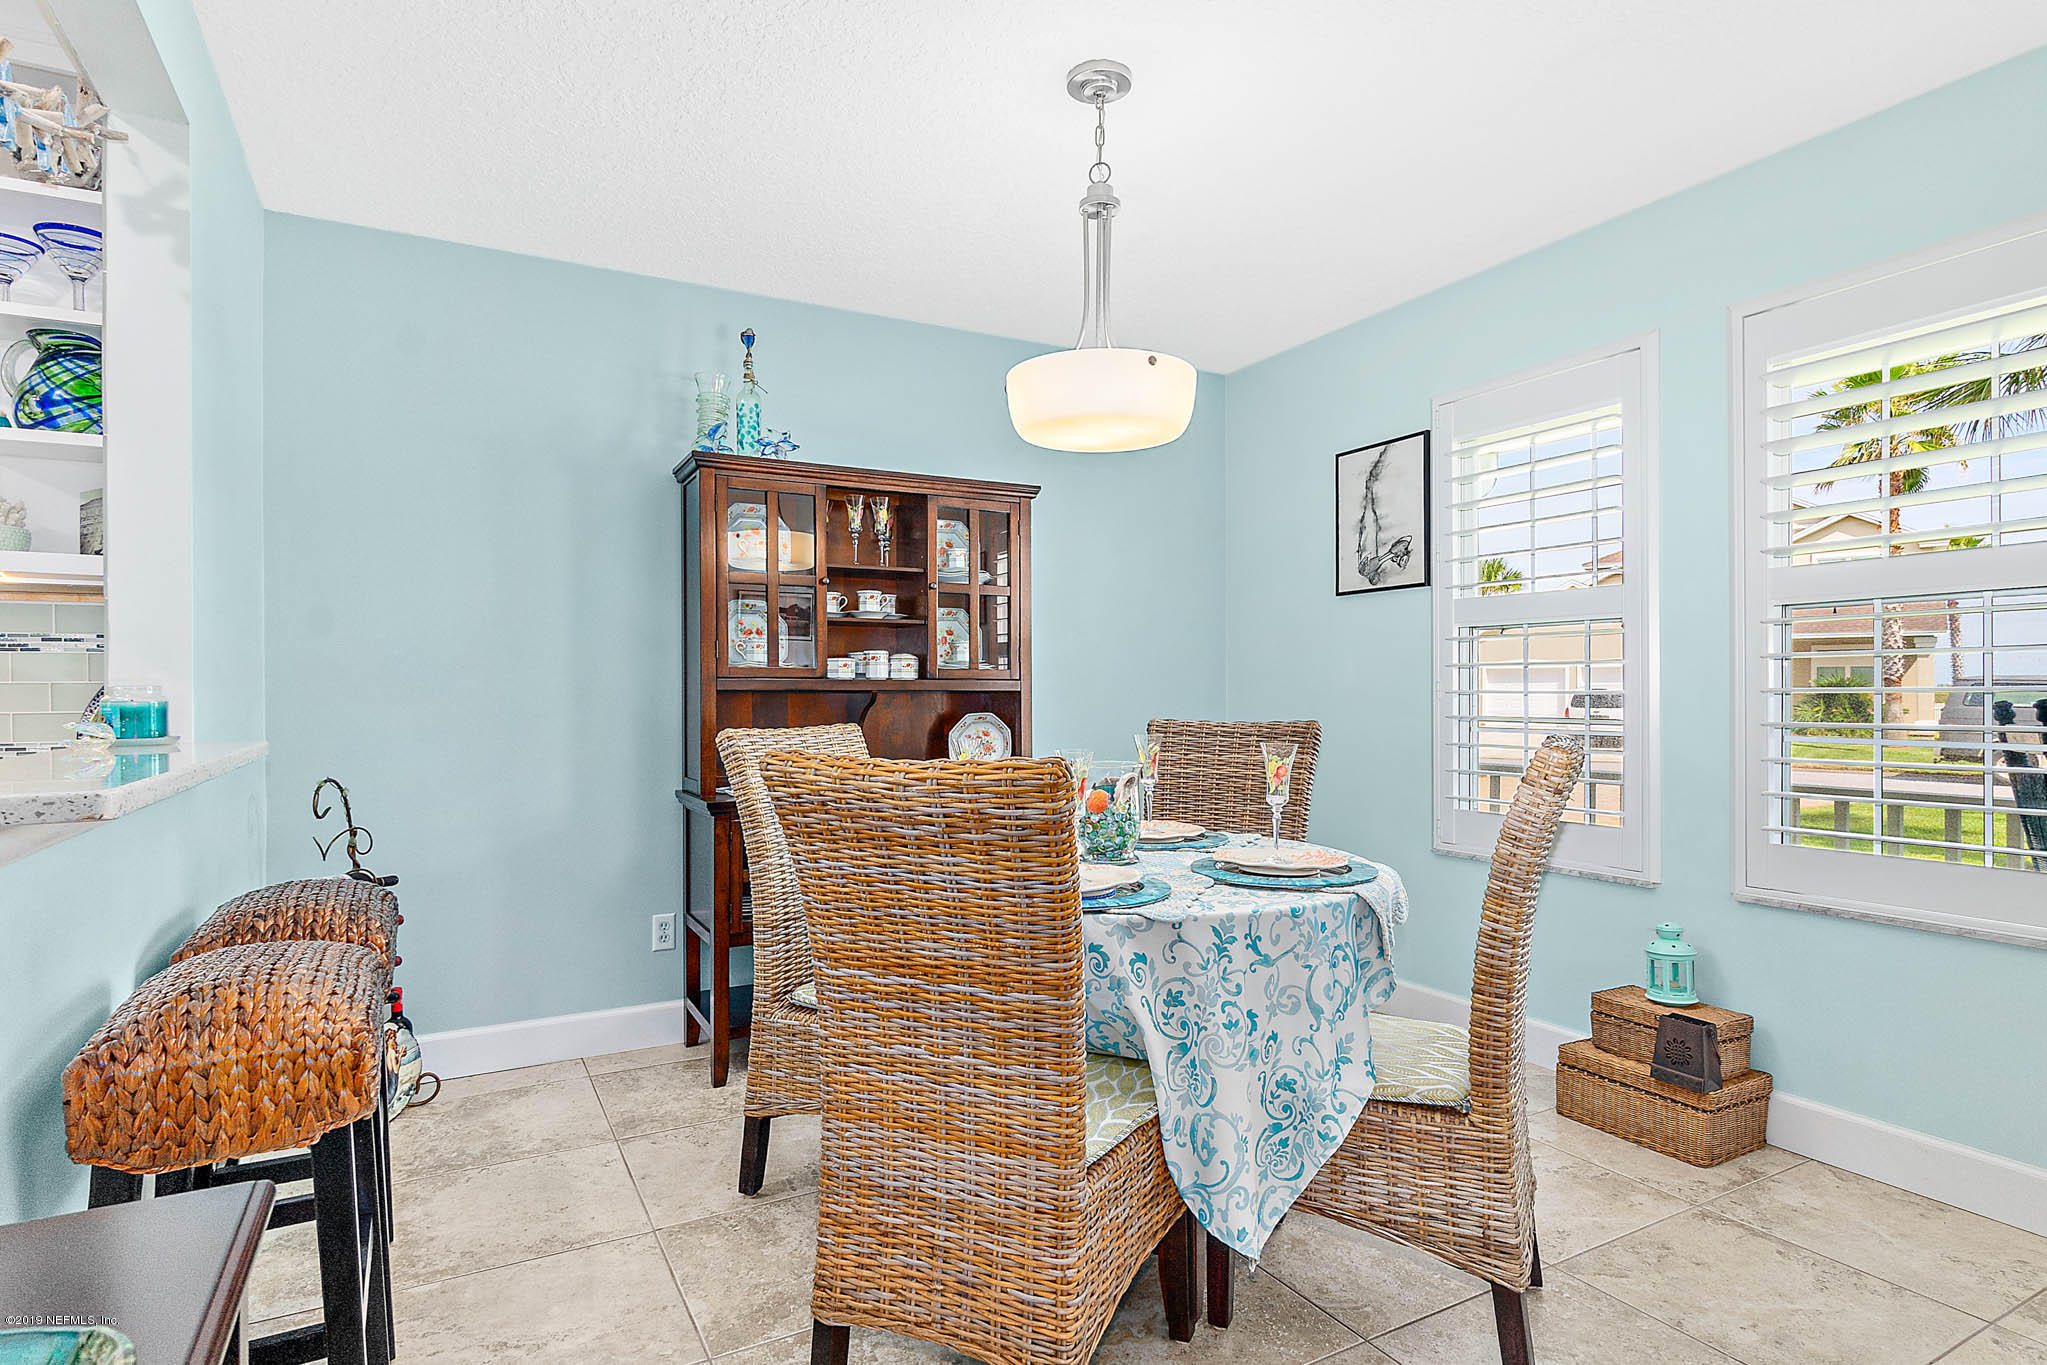 9189 AUGUST, ST AUGUSTINE, FLORIDA 32080, 3 Bedrooms Bedrooms, ,2 BathroomsBathrooms,Residential,For sale,AUGUST,1023350